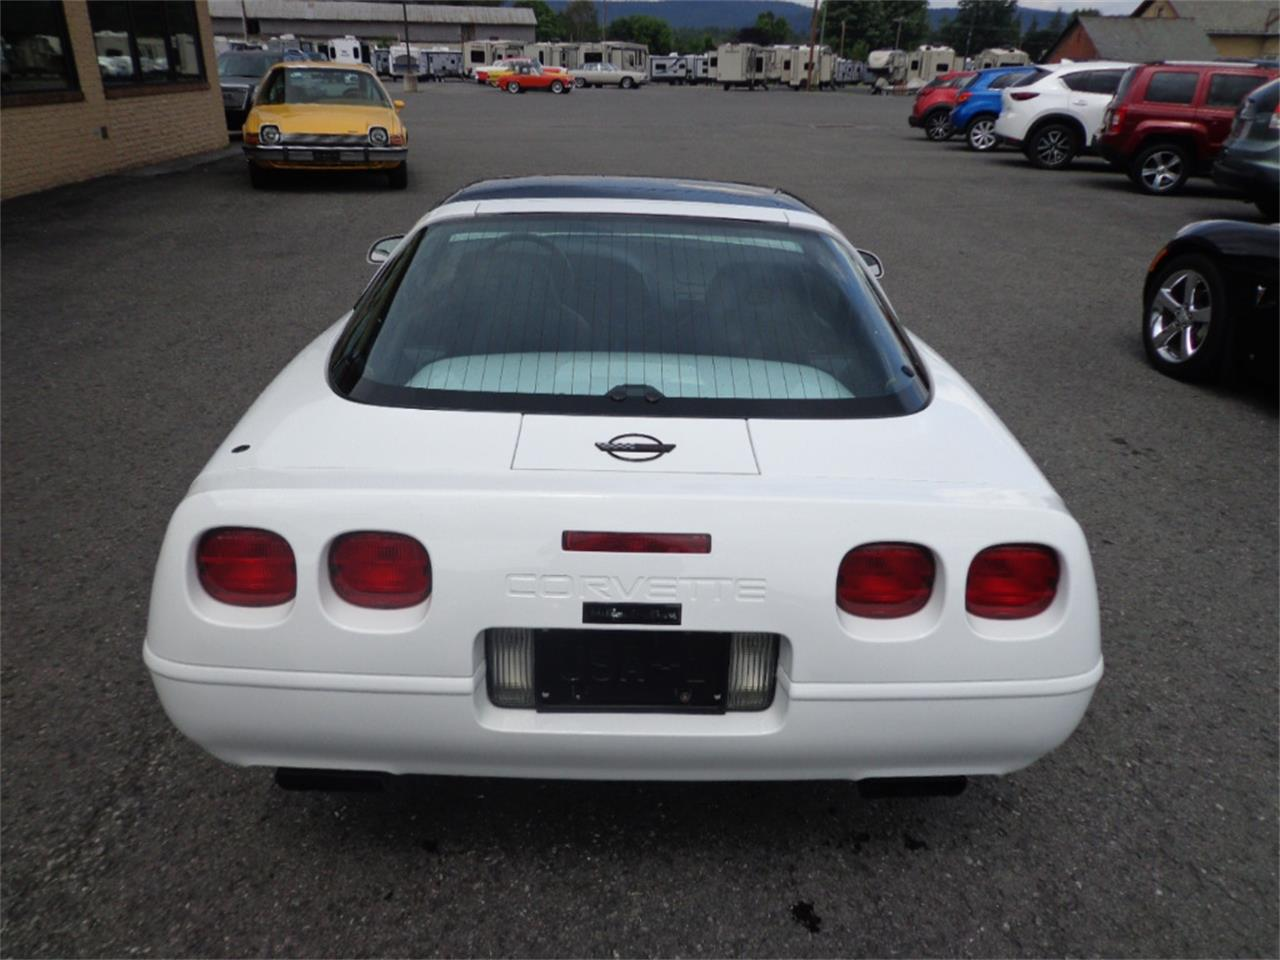 Large Picture of 1996 Chevrolet Corvette located in Pennsylvania Auction Vehicle Offered by Miller Brothers Auto Sales Inc - OINA